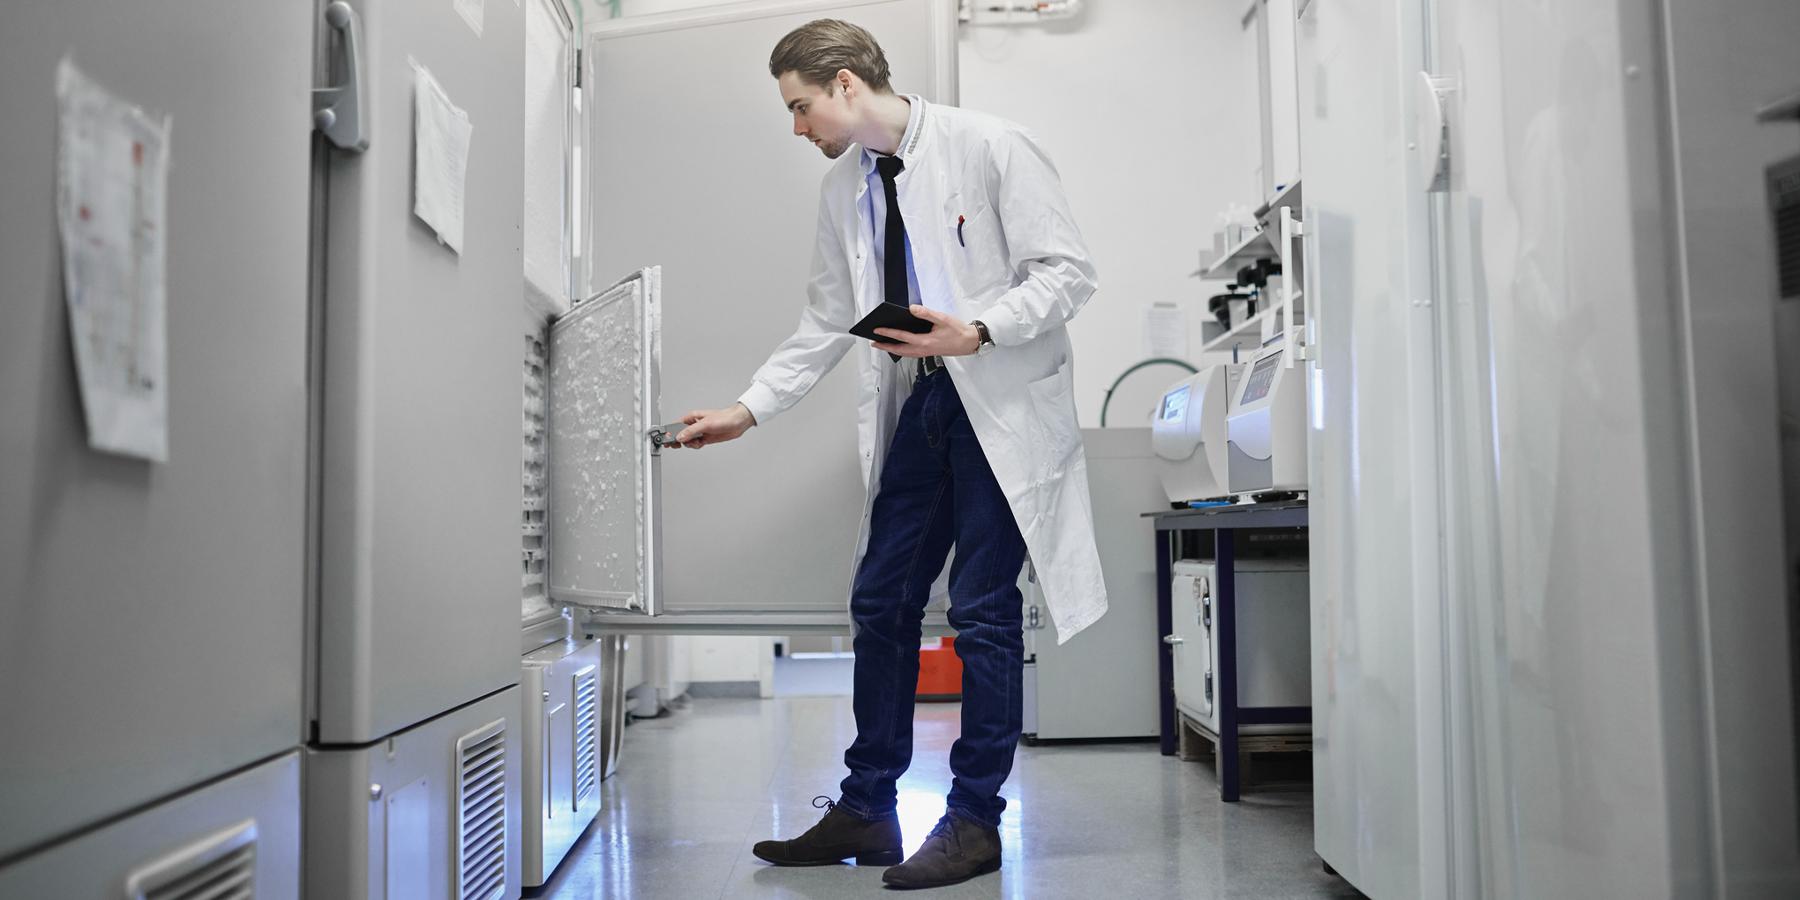 Important Performance Metrics for ULT Freezers and Cell Culture Incubators